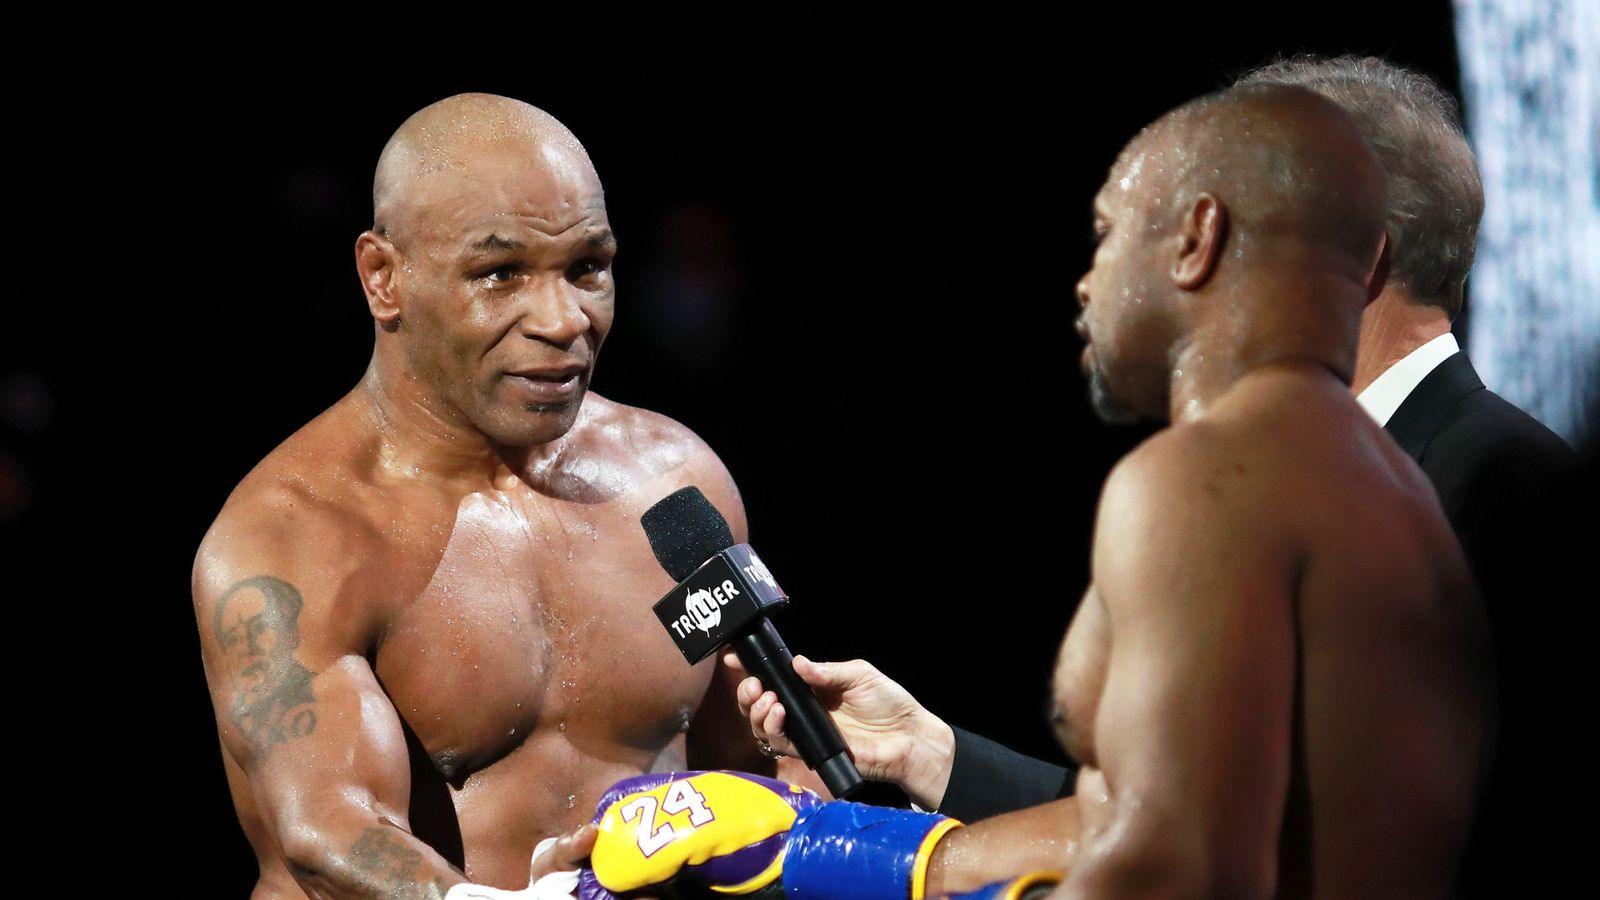 Mike Tyson's comeback fight against Roy Jones Jr ends in a draw